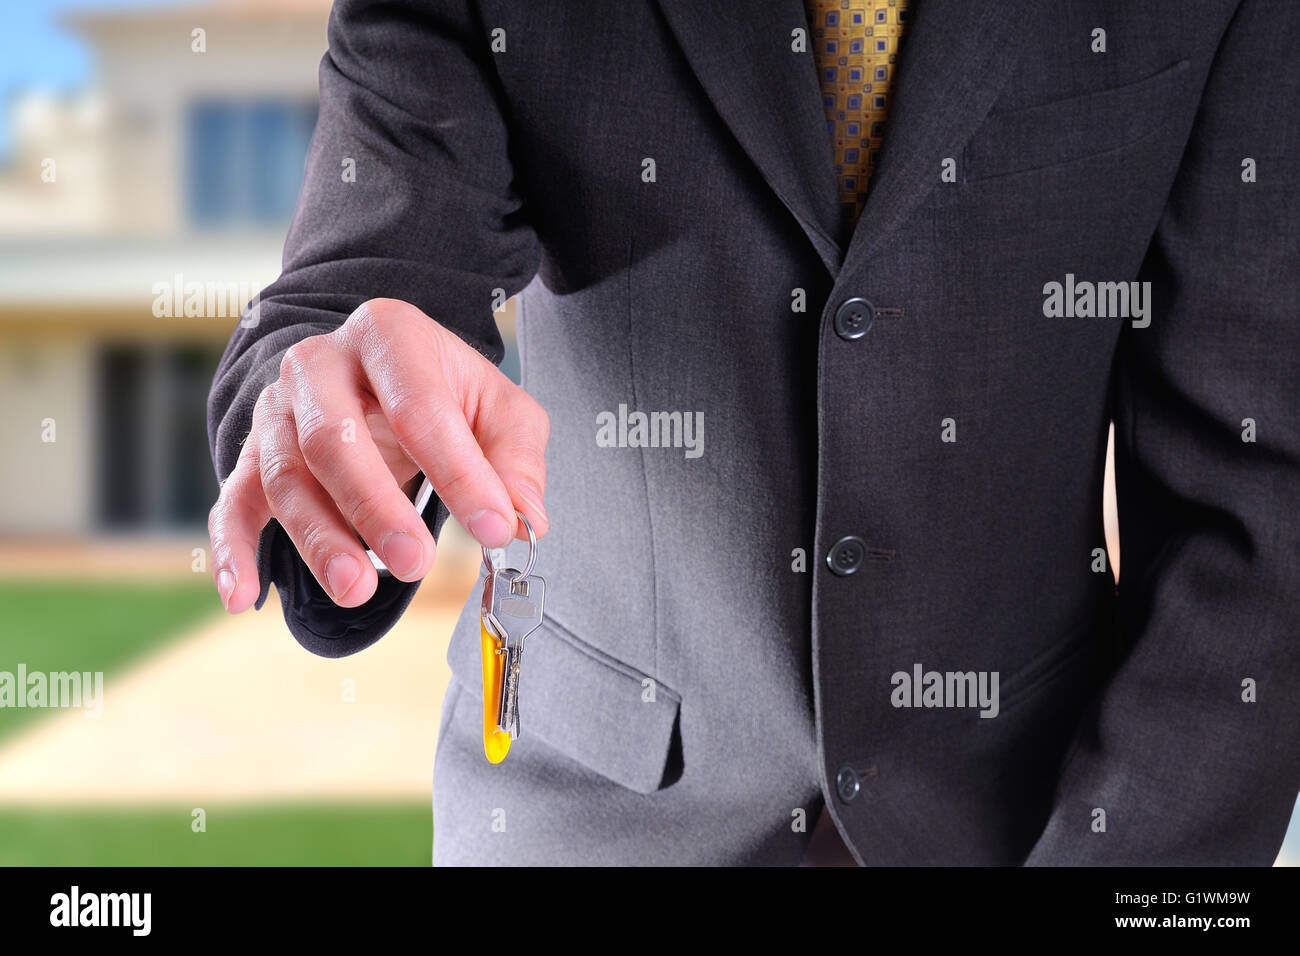 half-body commercial agent wearing a dark gray costume handing the keys for the purchase of a house with home background - Stock Image